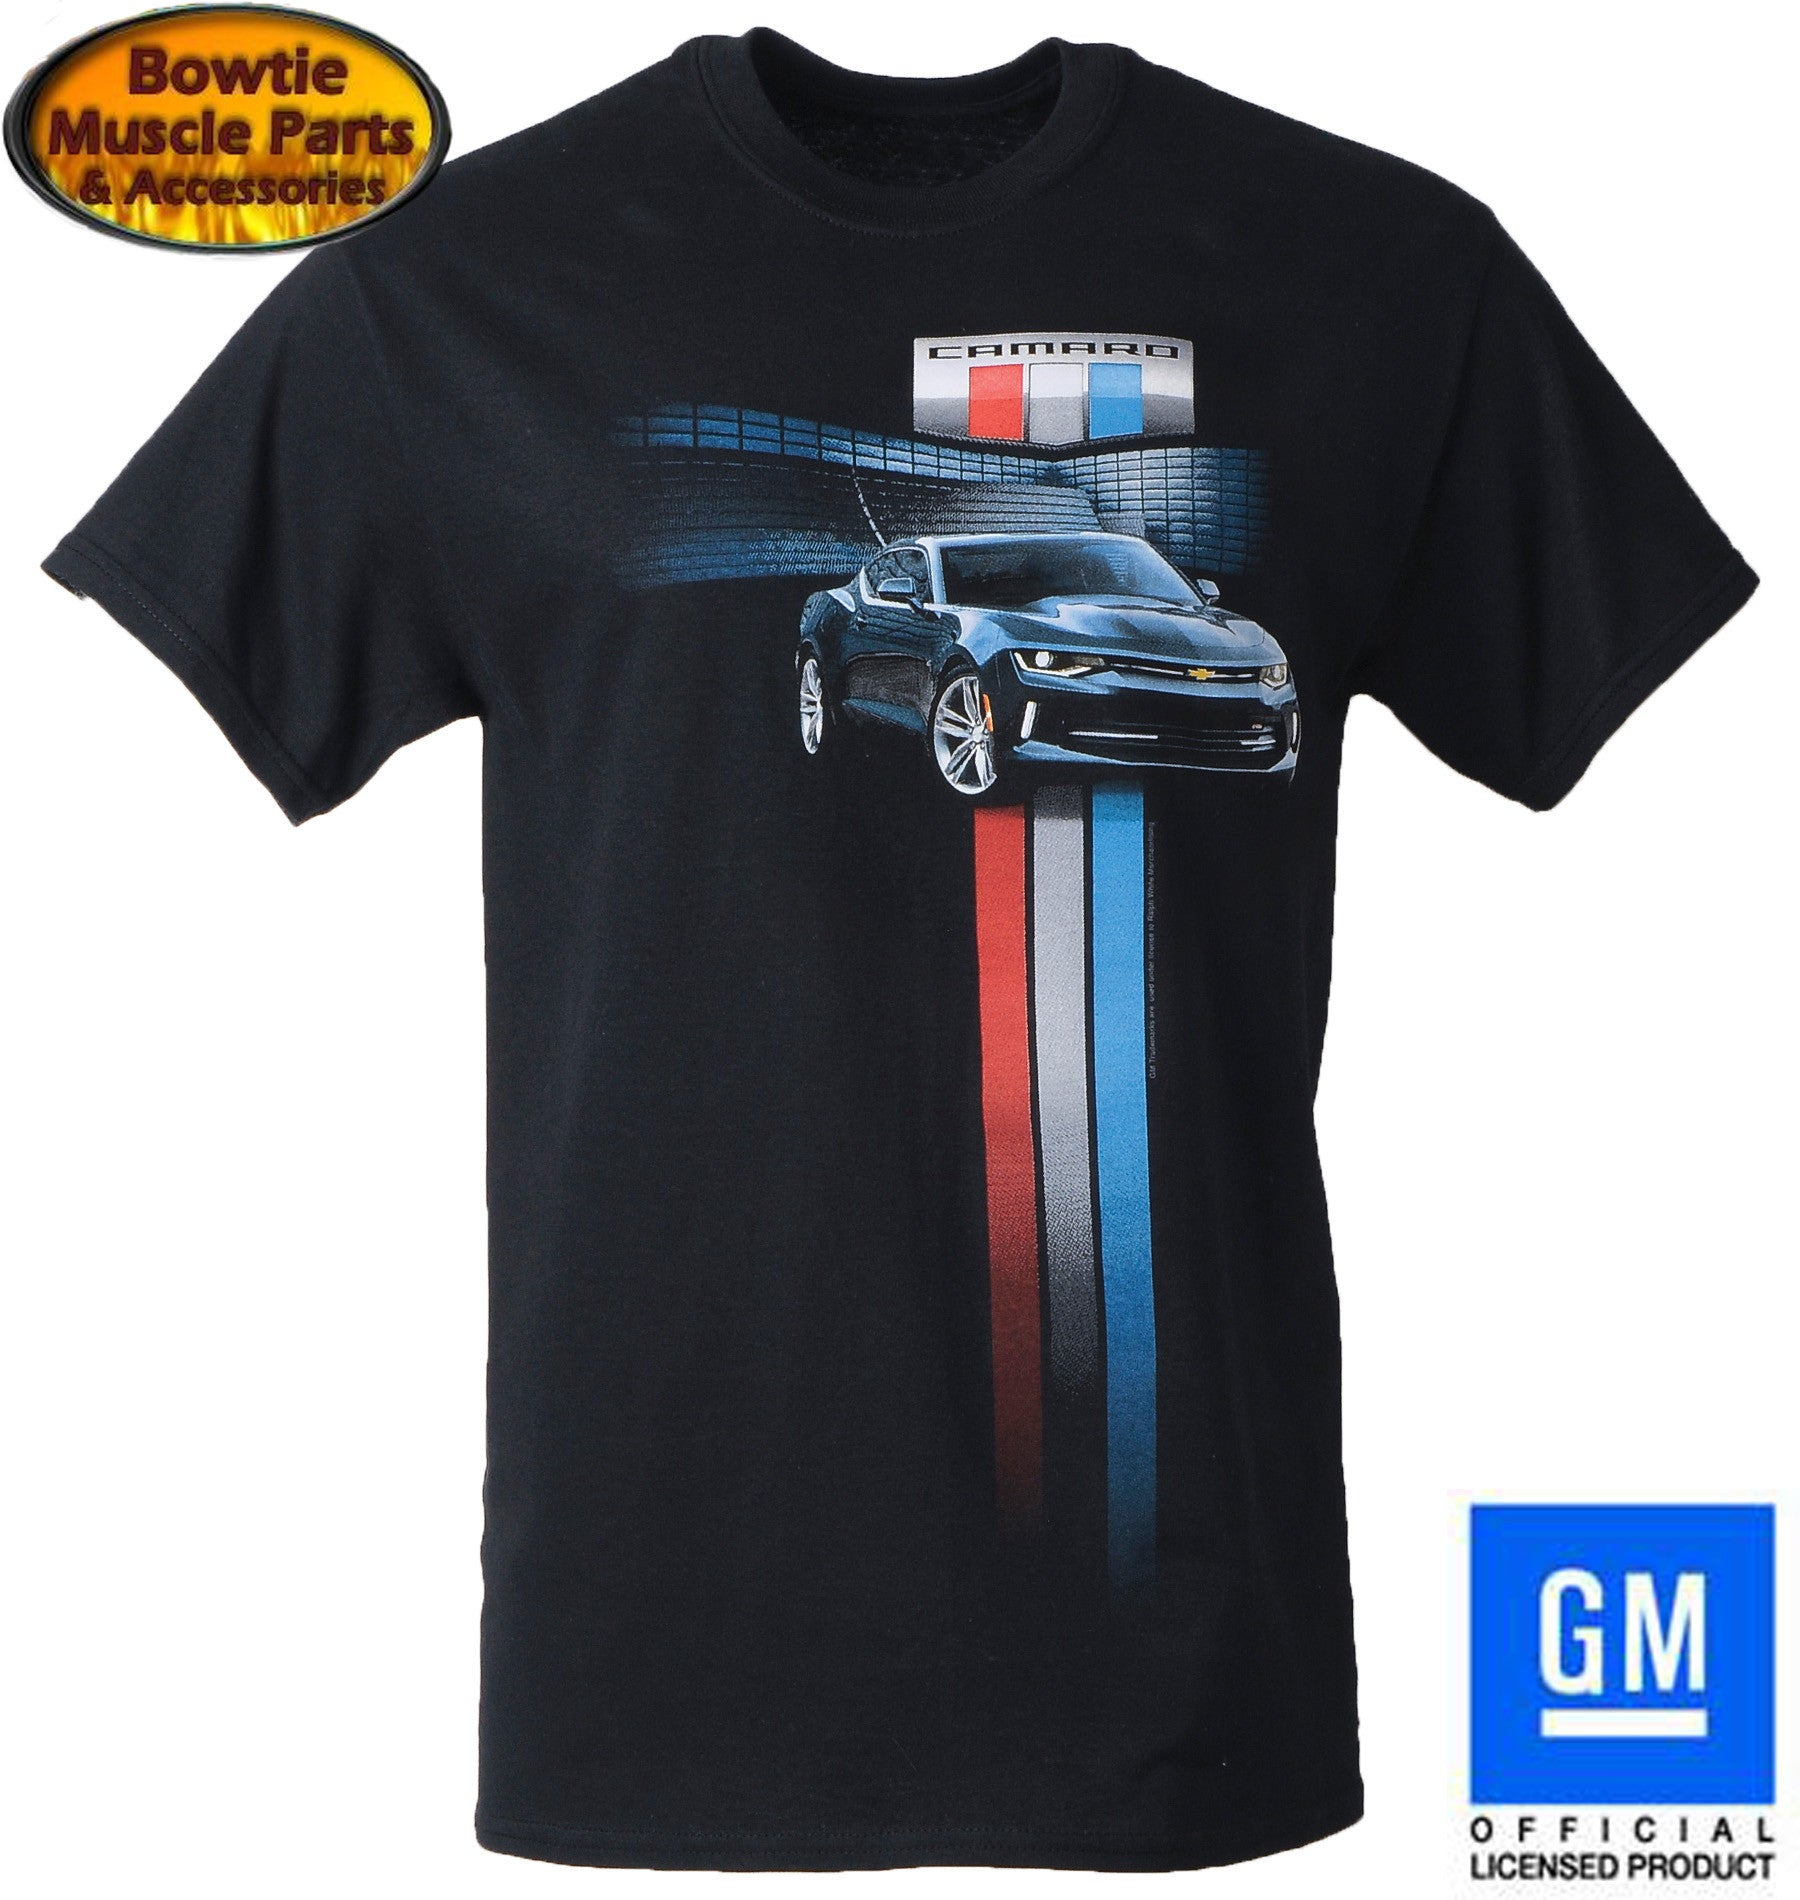 2016 CAMARO 6 6TH GENERATION LOGO T-SHIRT 67 68 69 70 78 79 84 89 14